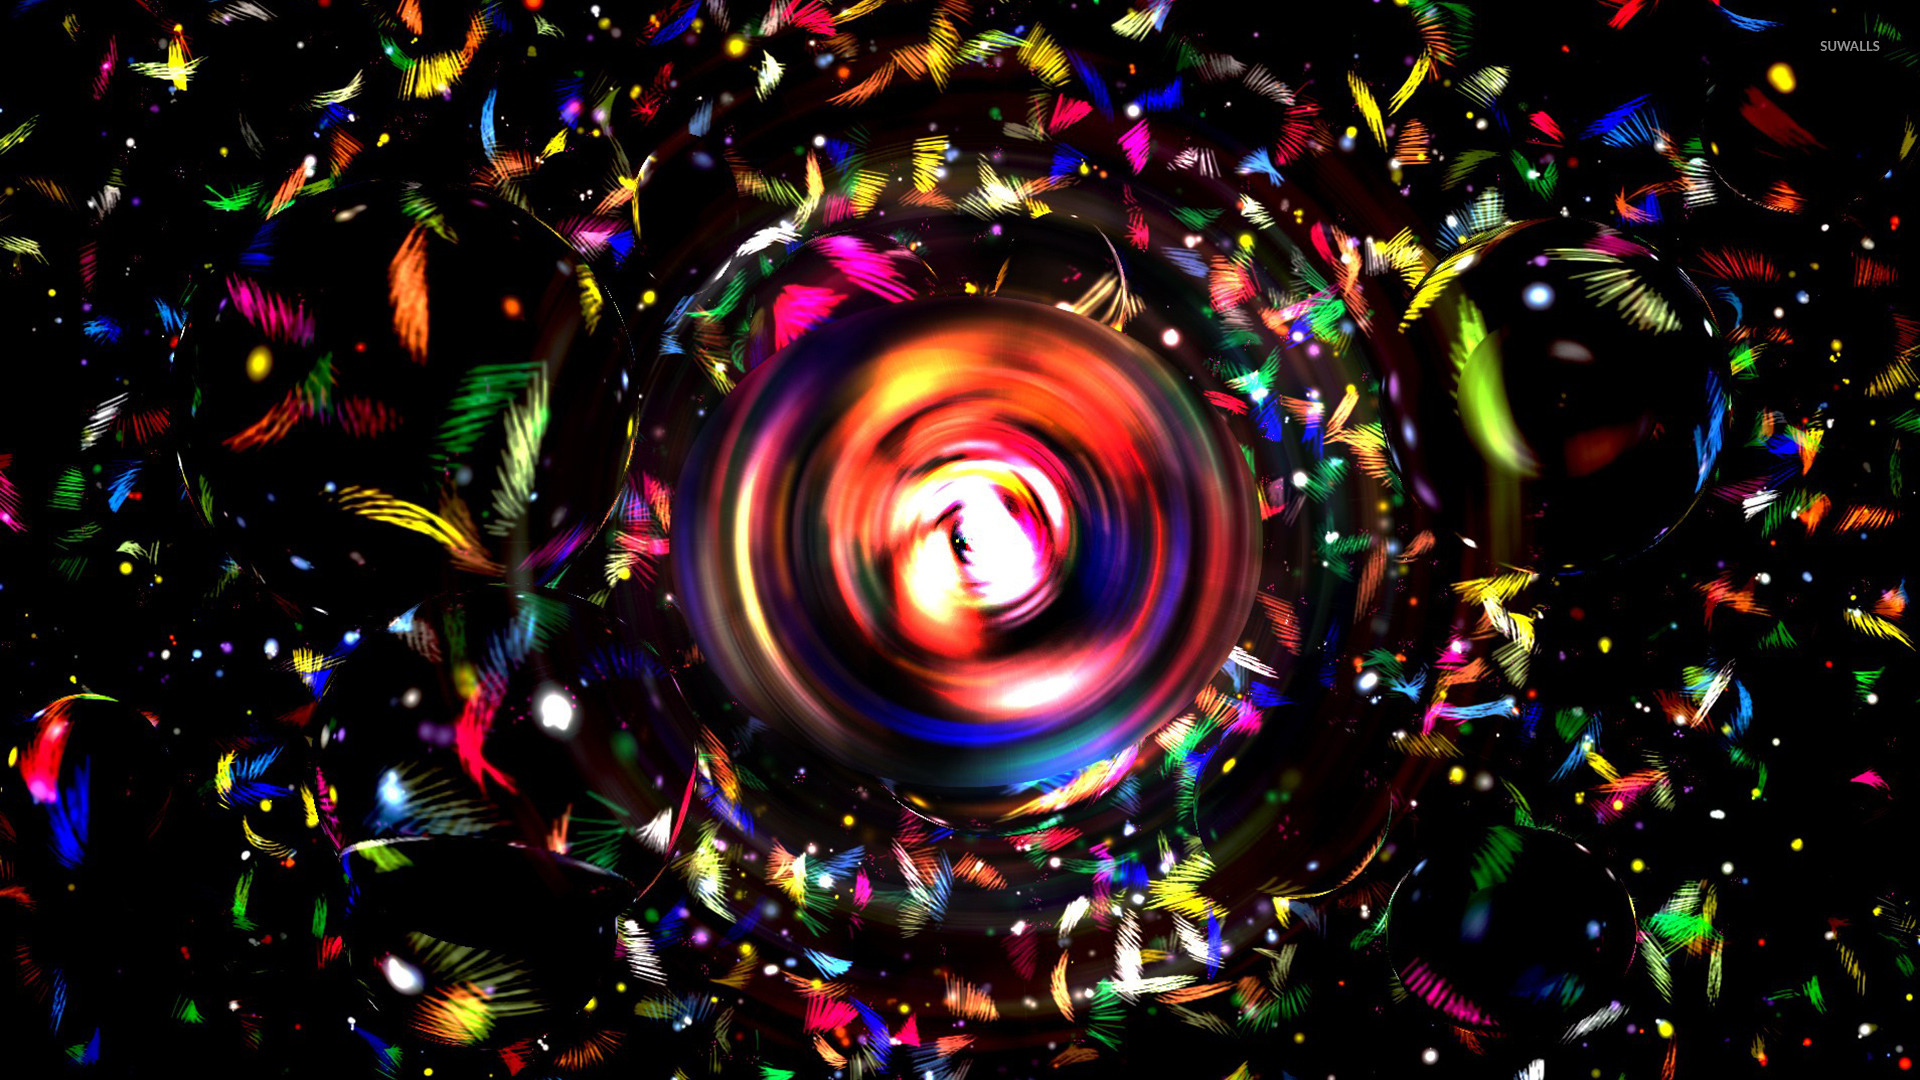 Colorful orb wallpaper   Abstract wallpapers   20902 1280x800